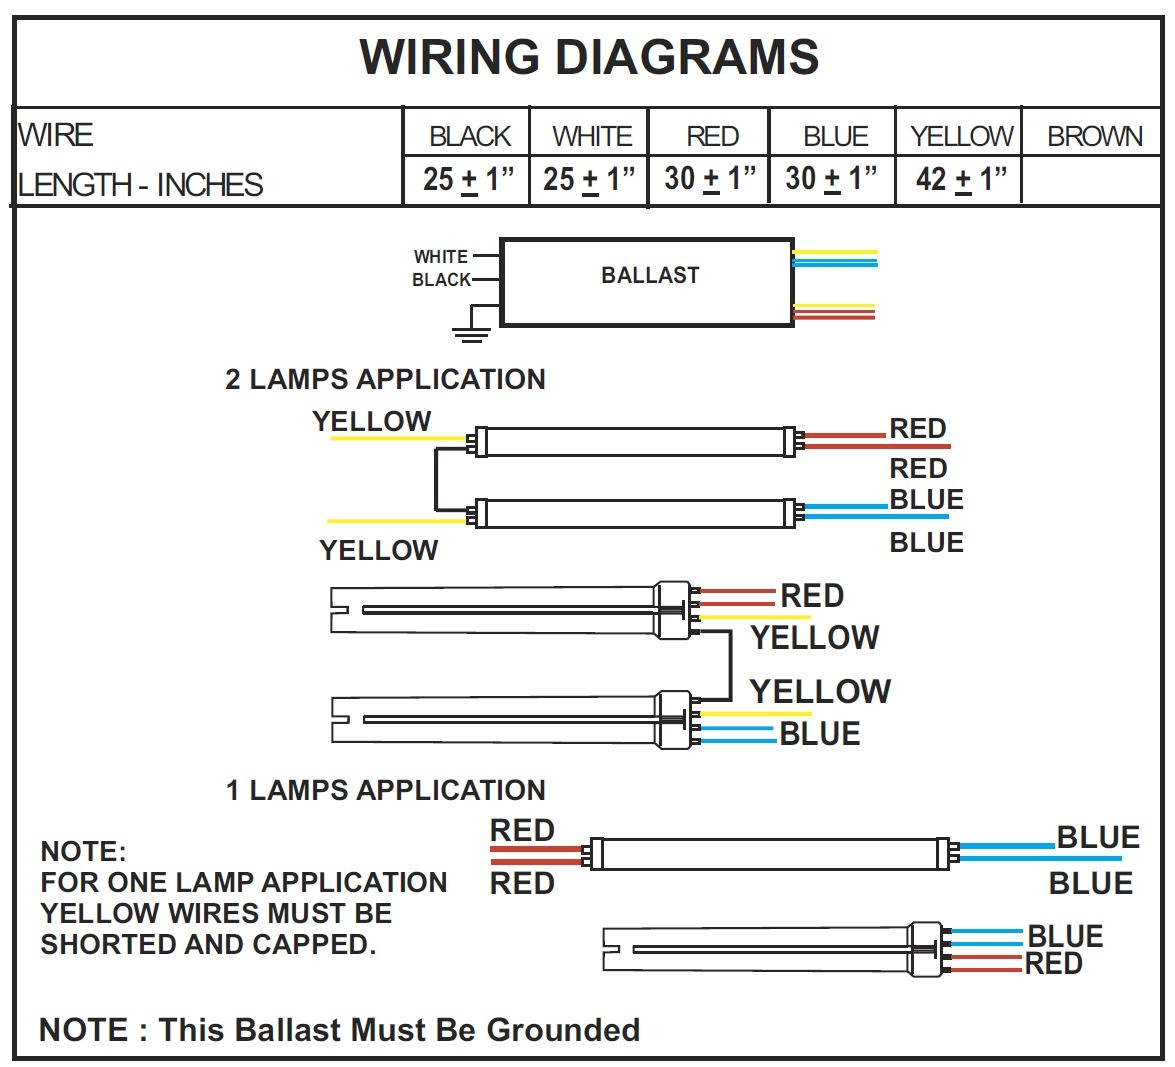 2 lamp t8 ballast wiring diagram Download-t8 ballast wiring diagram gallery wiring diagram rh visithoustontexas org t8 ballast install t8 electronic ballast wiring 5-m